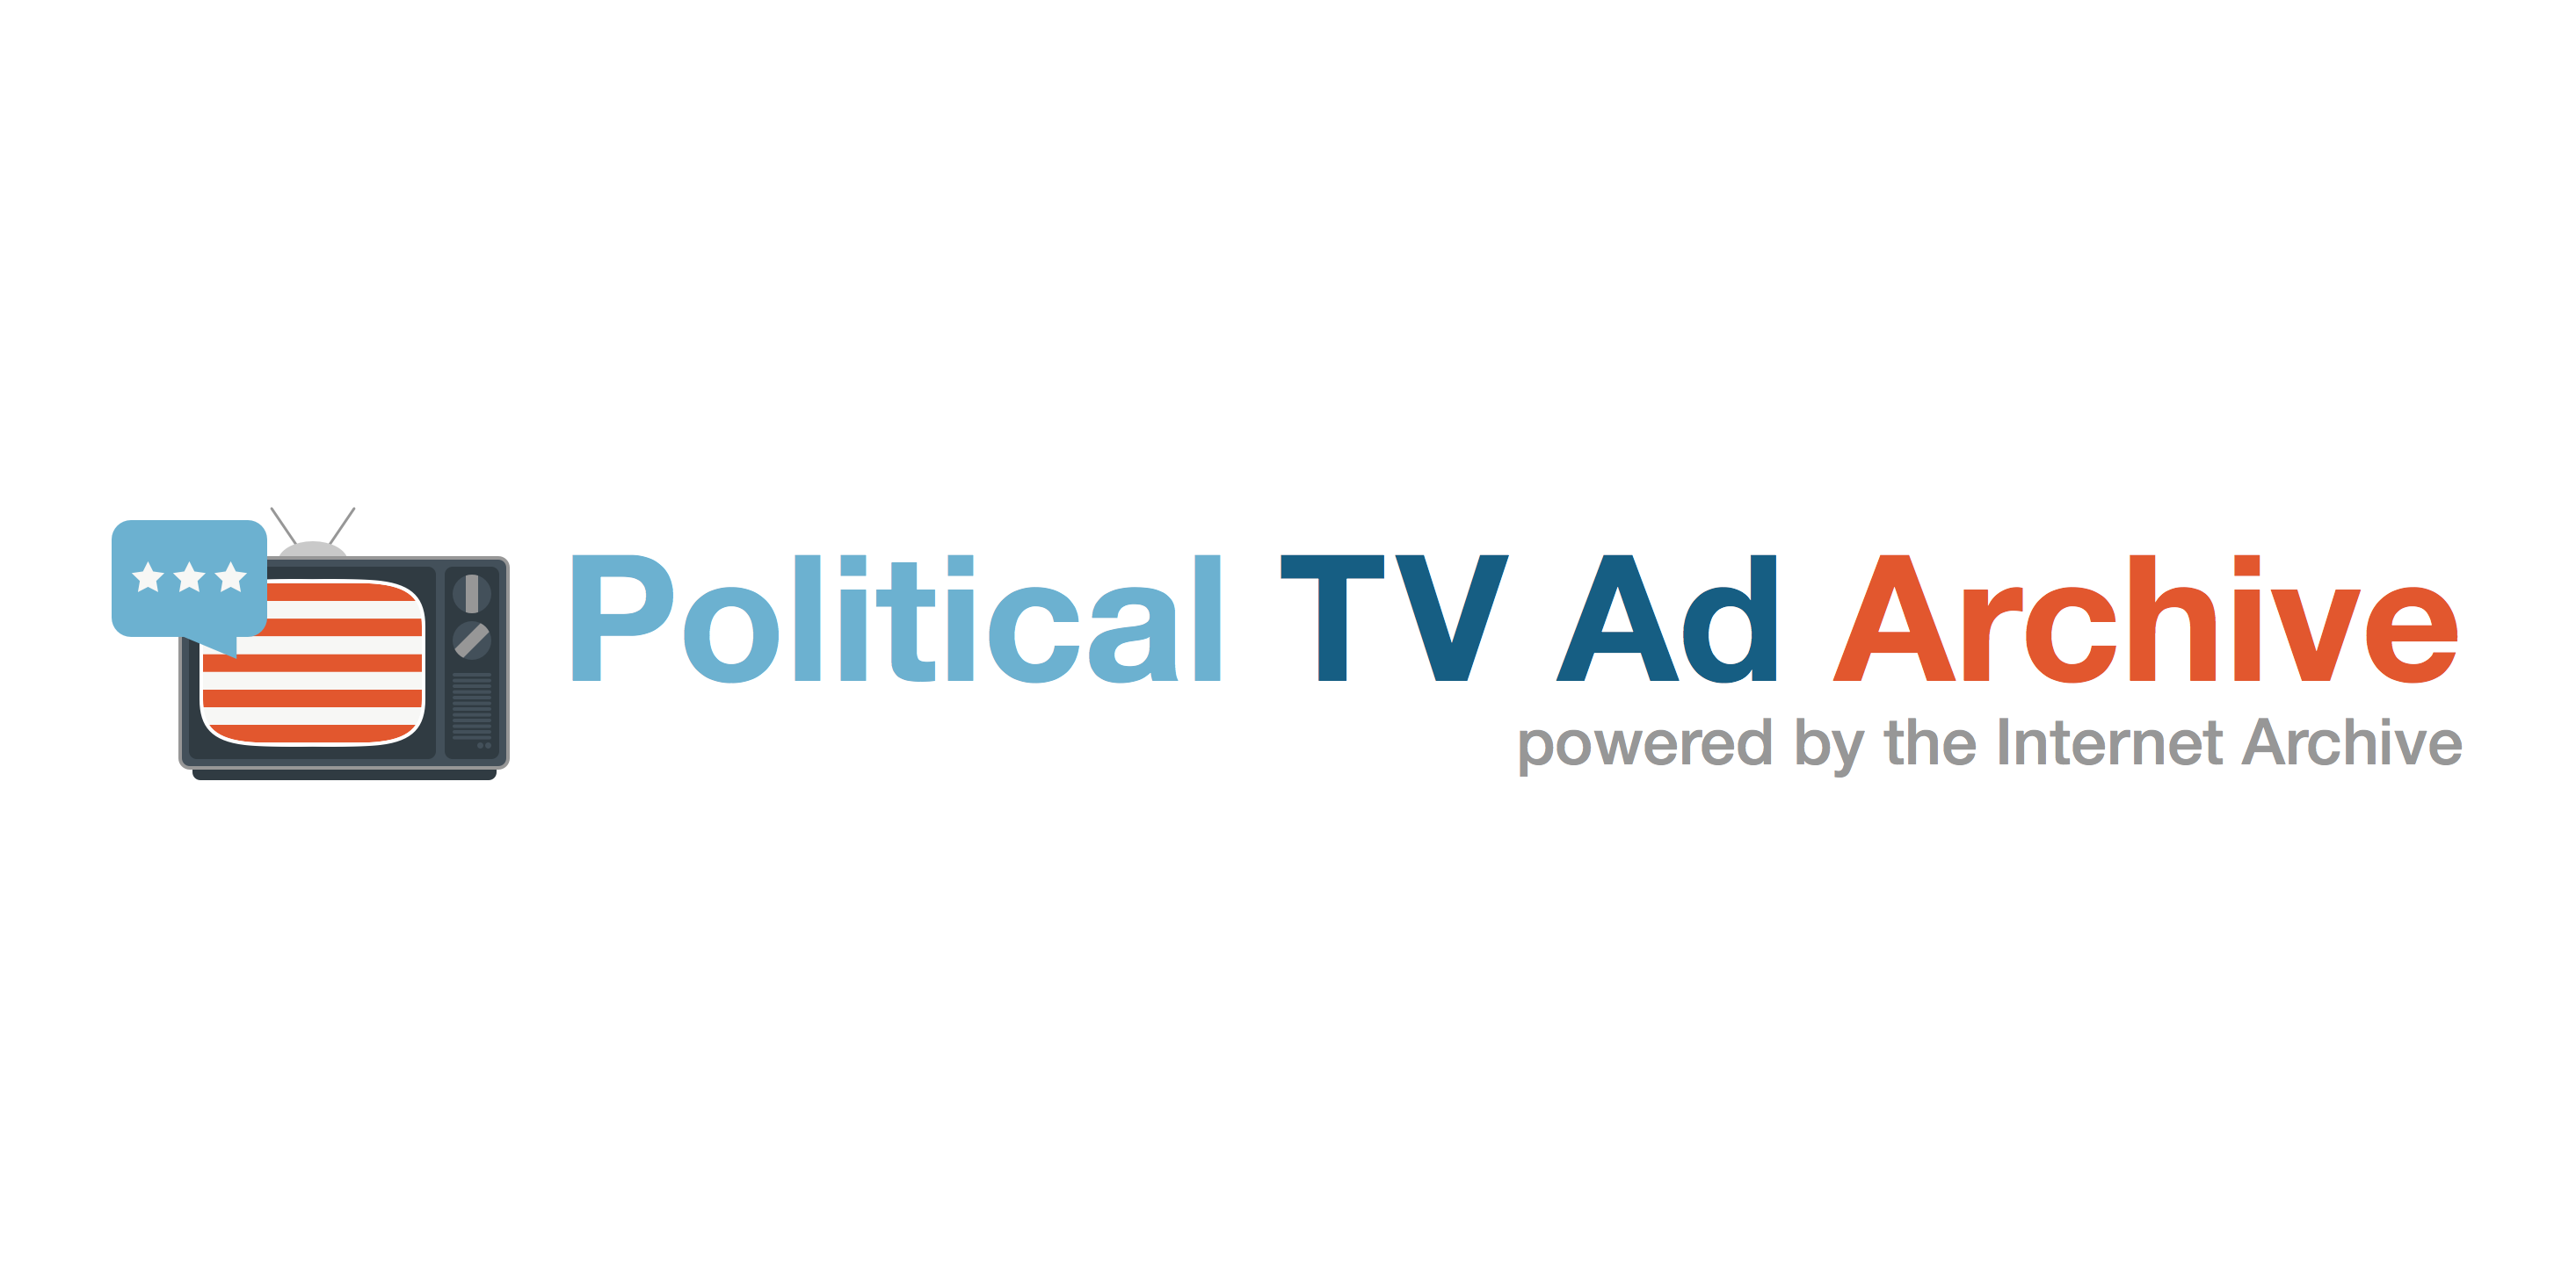 Archive of 35,000 TV Political Ads Launched, Creating a